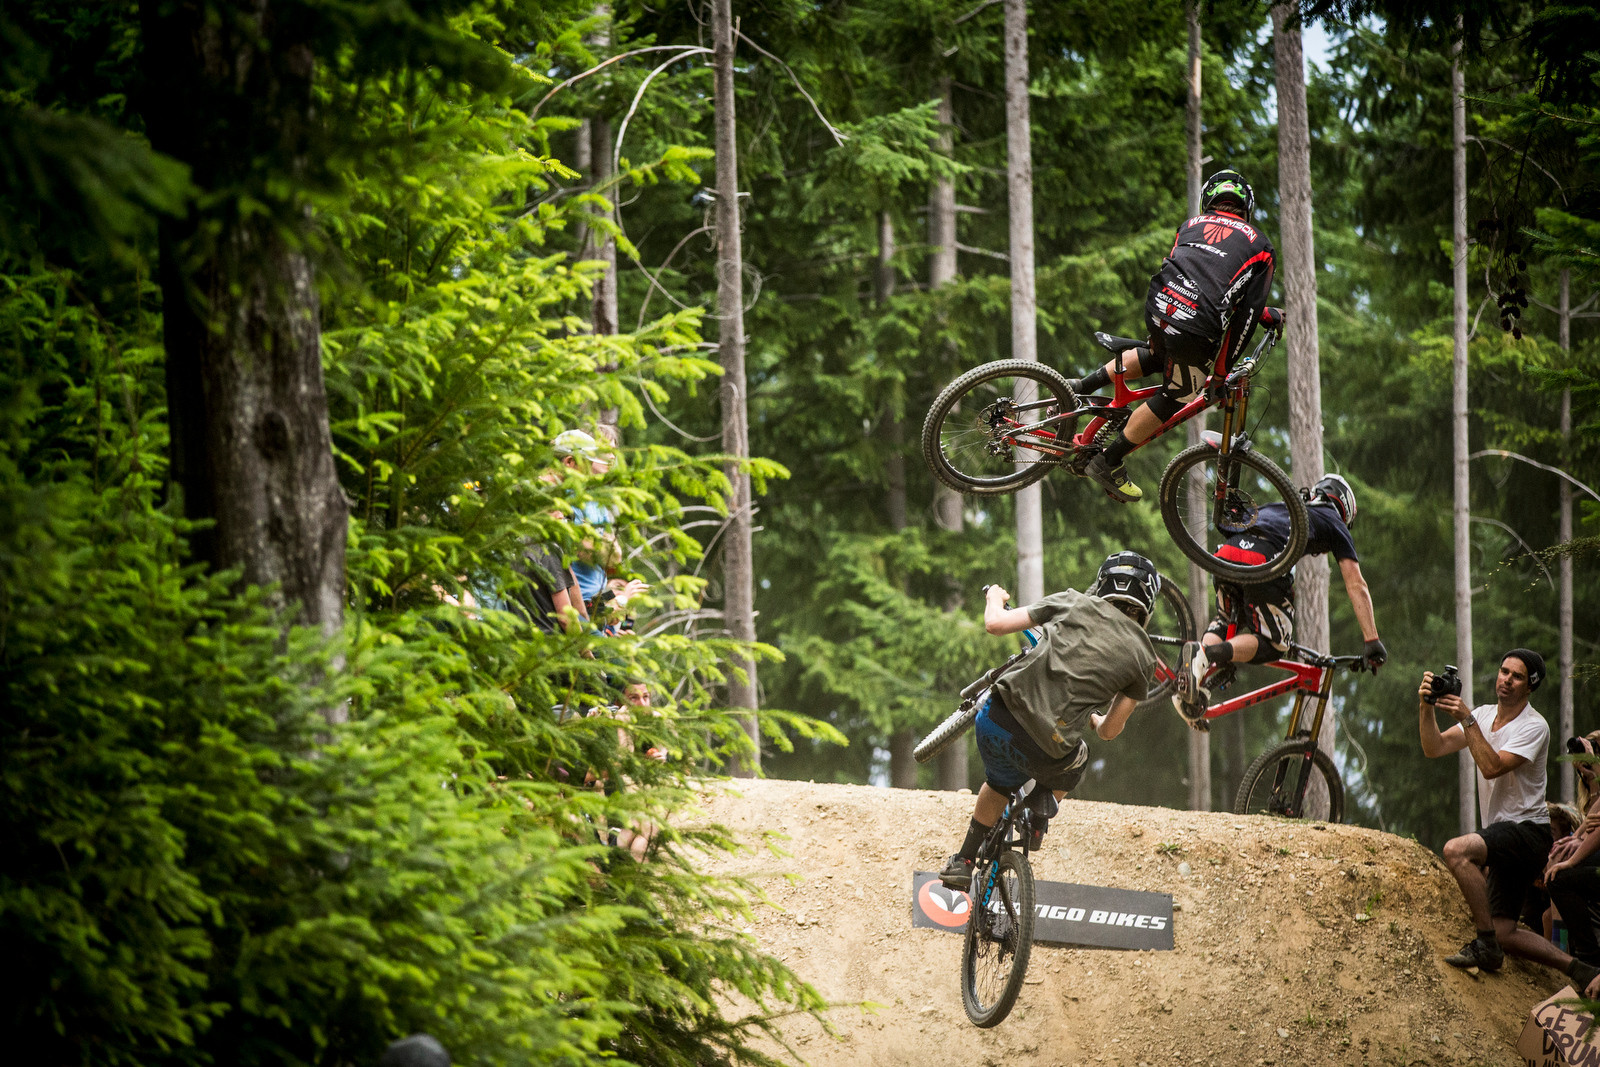 Greg Williamson mid-train - Vertigo Bikes Whip Off at the Atlas Bar Wynyard Jam - Mountain Biking Pictures - Vital MTB